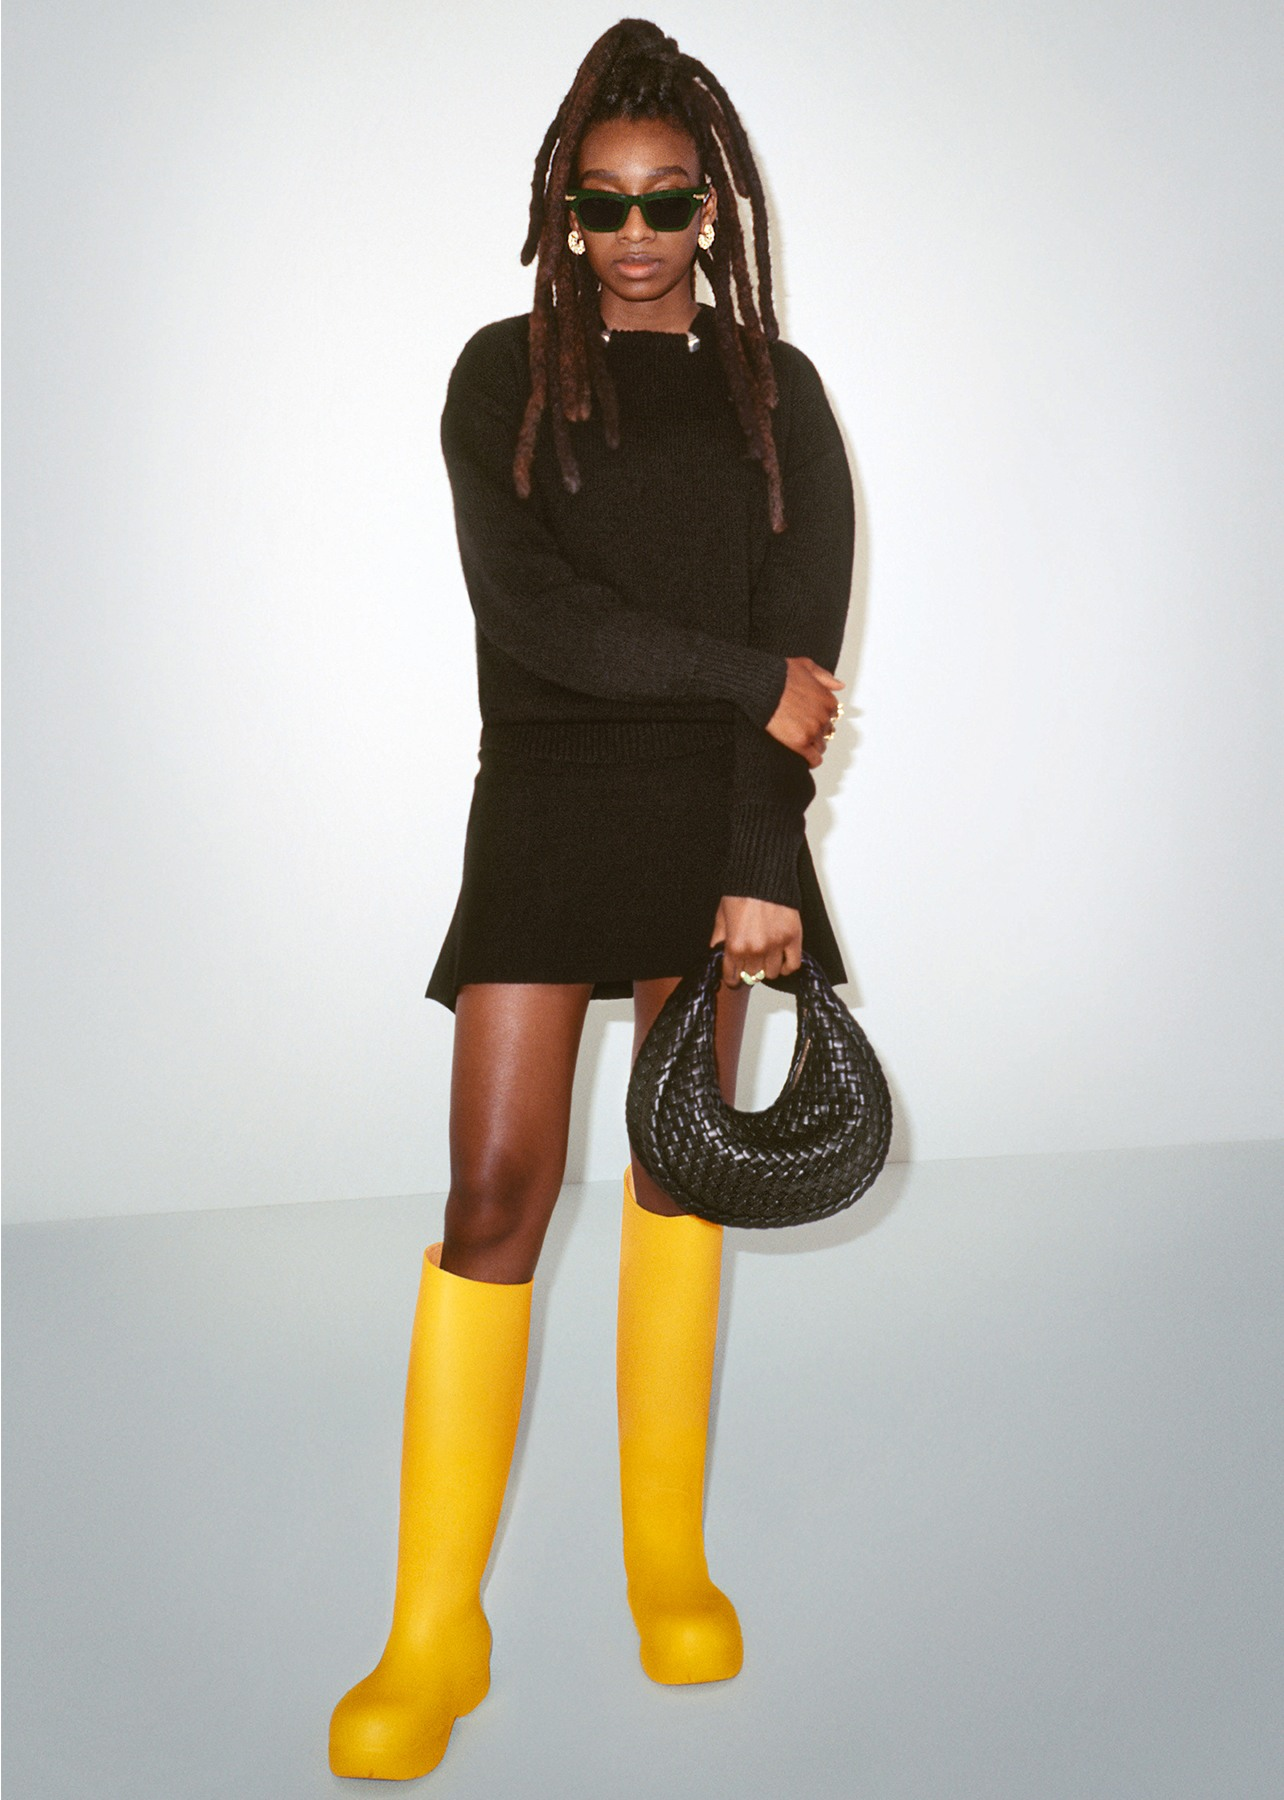 Model poses wearing a black sweater, black skirt, yellow knee-high rubber boots and holding a black woven top handle bag